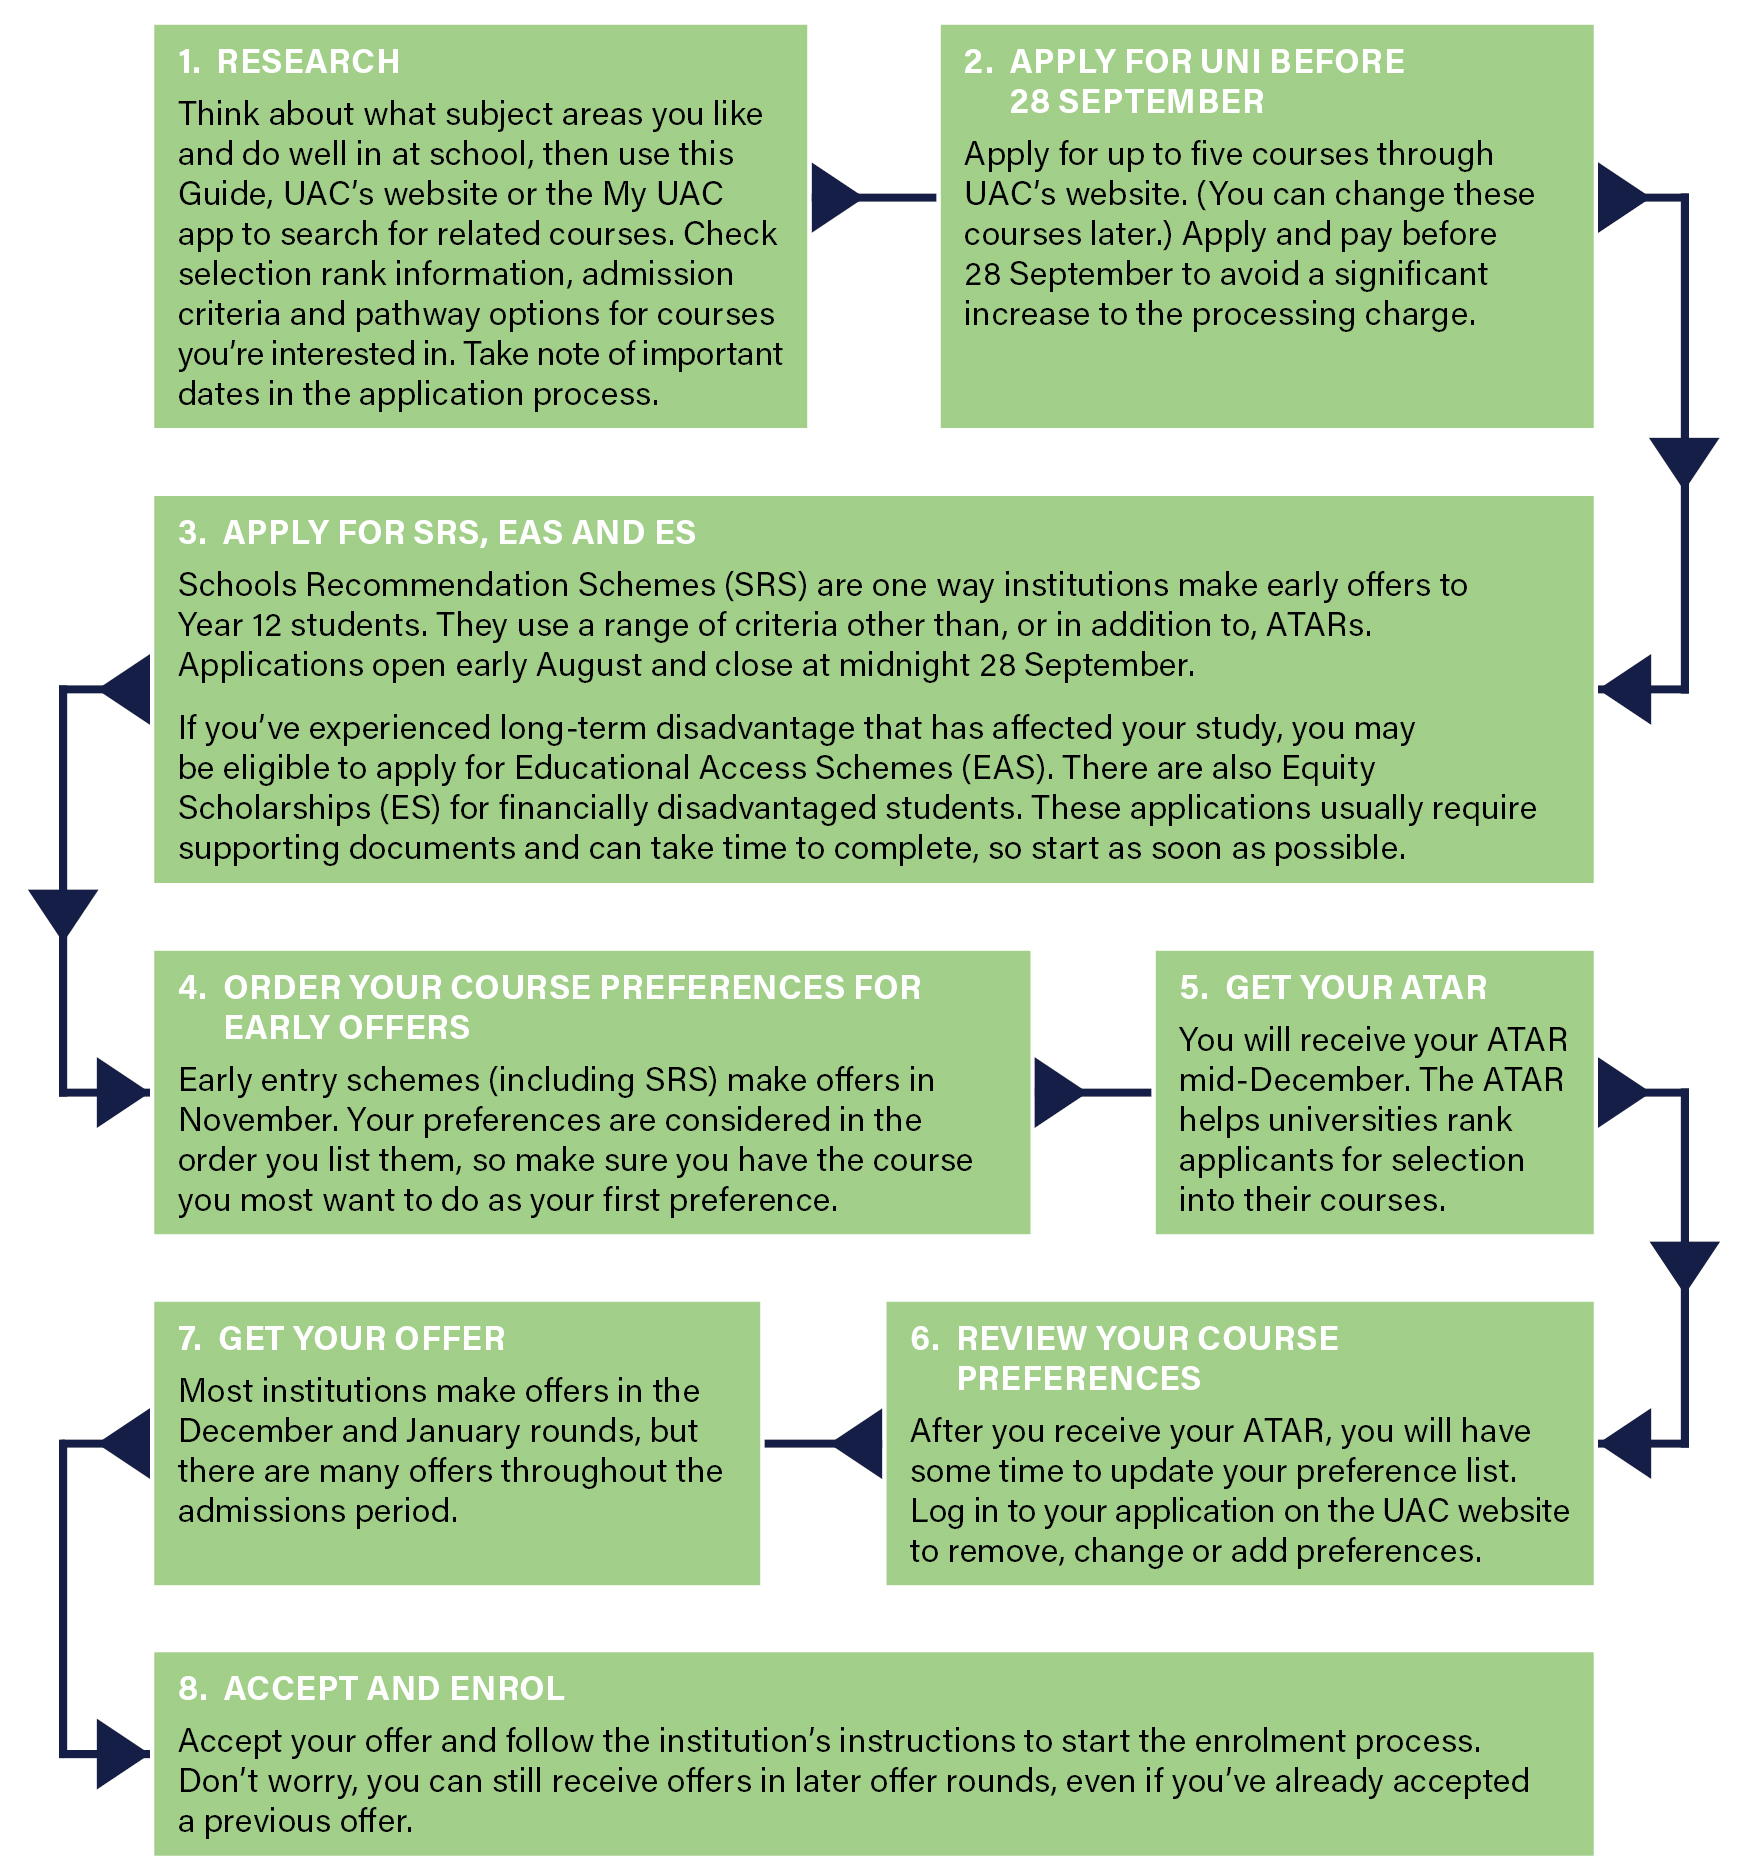 Steps to Study through UAC - a flow chart illustrating the process of applying for uni through UAC